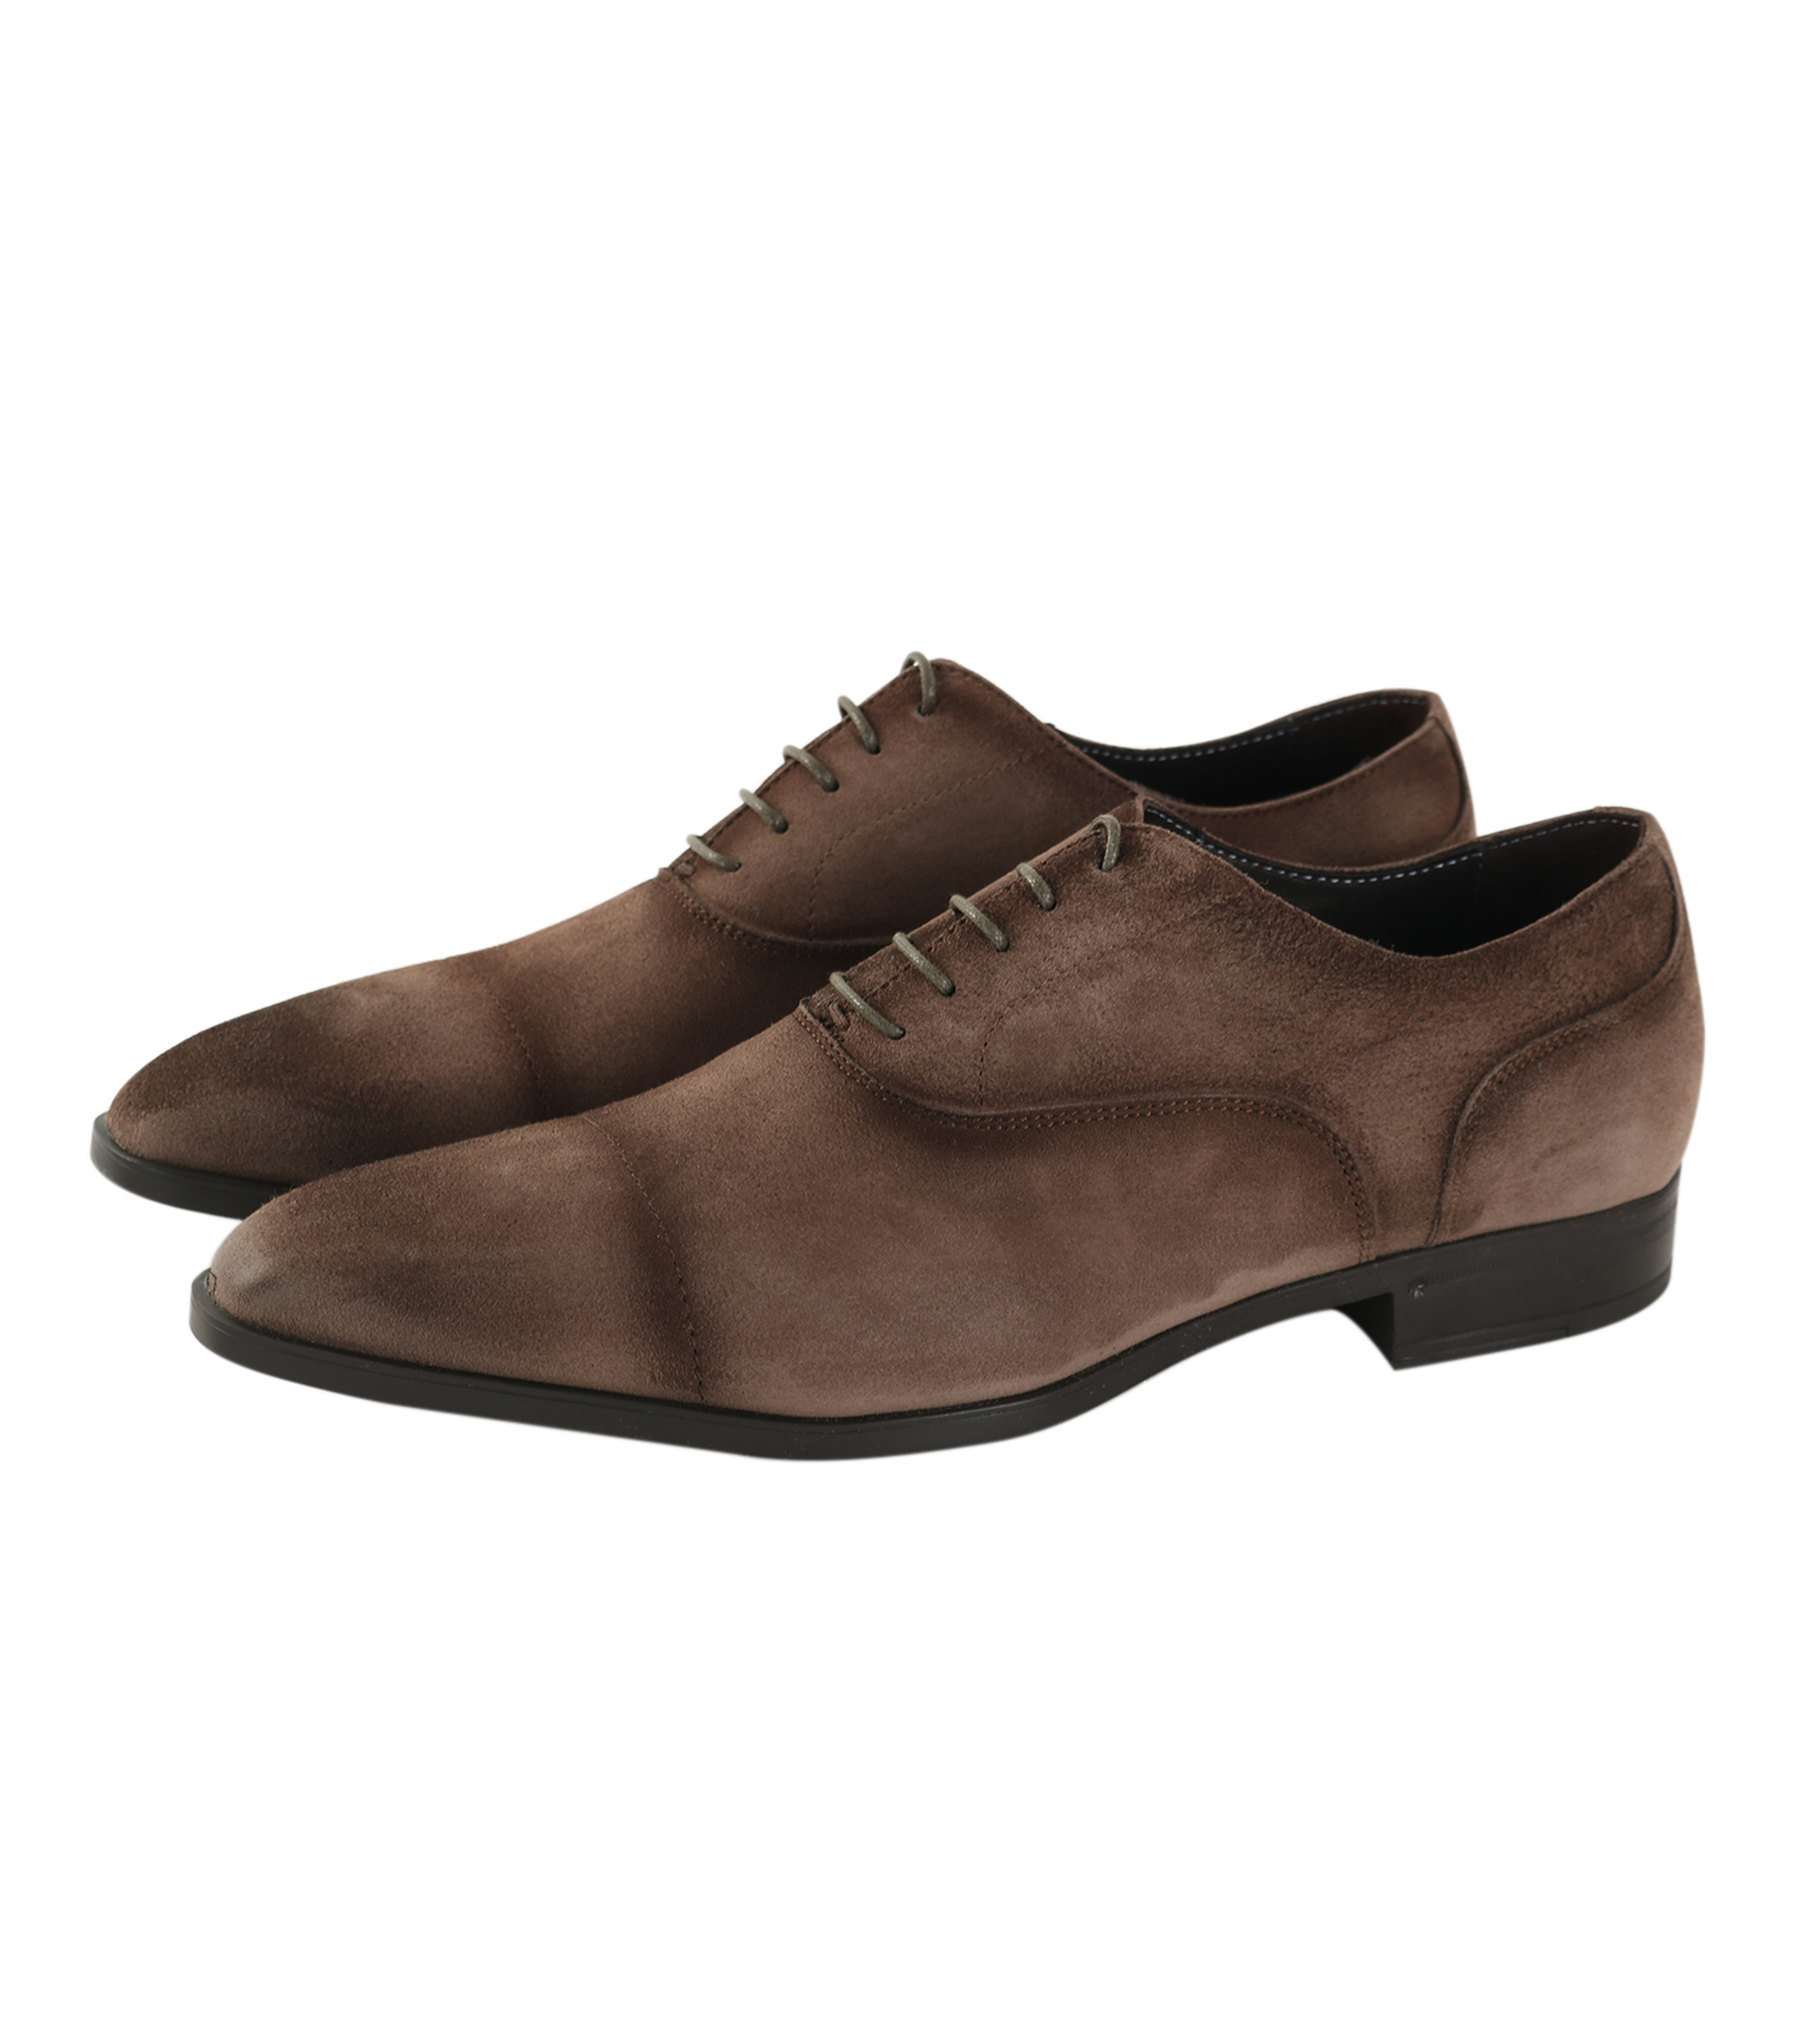 Giorgio Asiago Daim Marron Chaussures À Lacets MrCO0